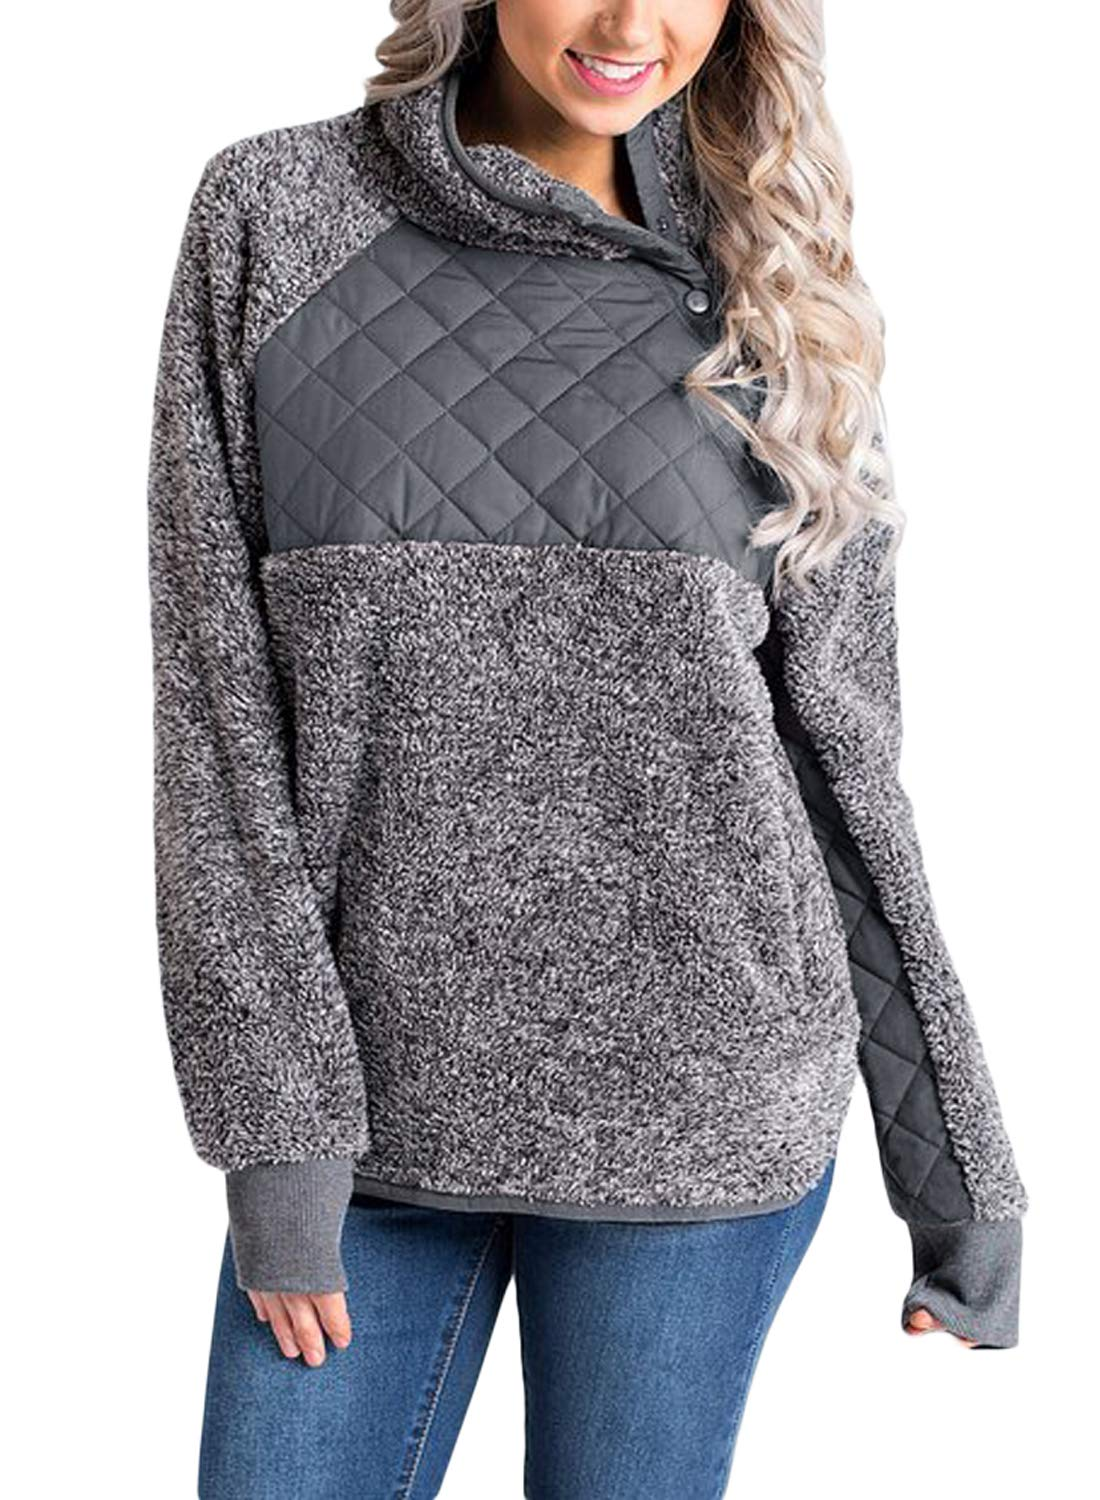 Sidefeel Women Button Neck Fleece Pullover Coat Asymmetrical Sweatshirts Outwear XX-Large Grey by Sidefeel (Image #1)